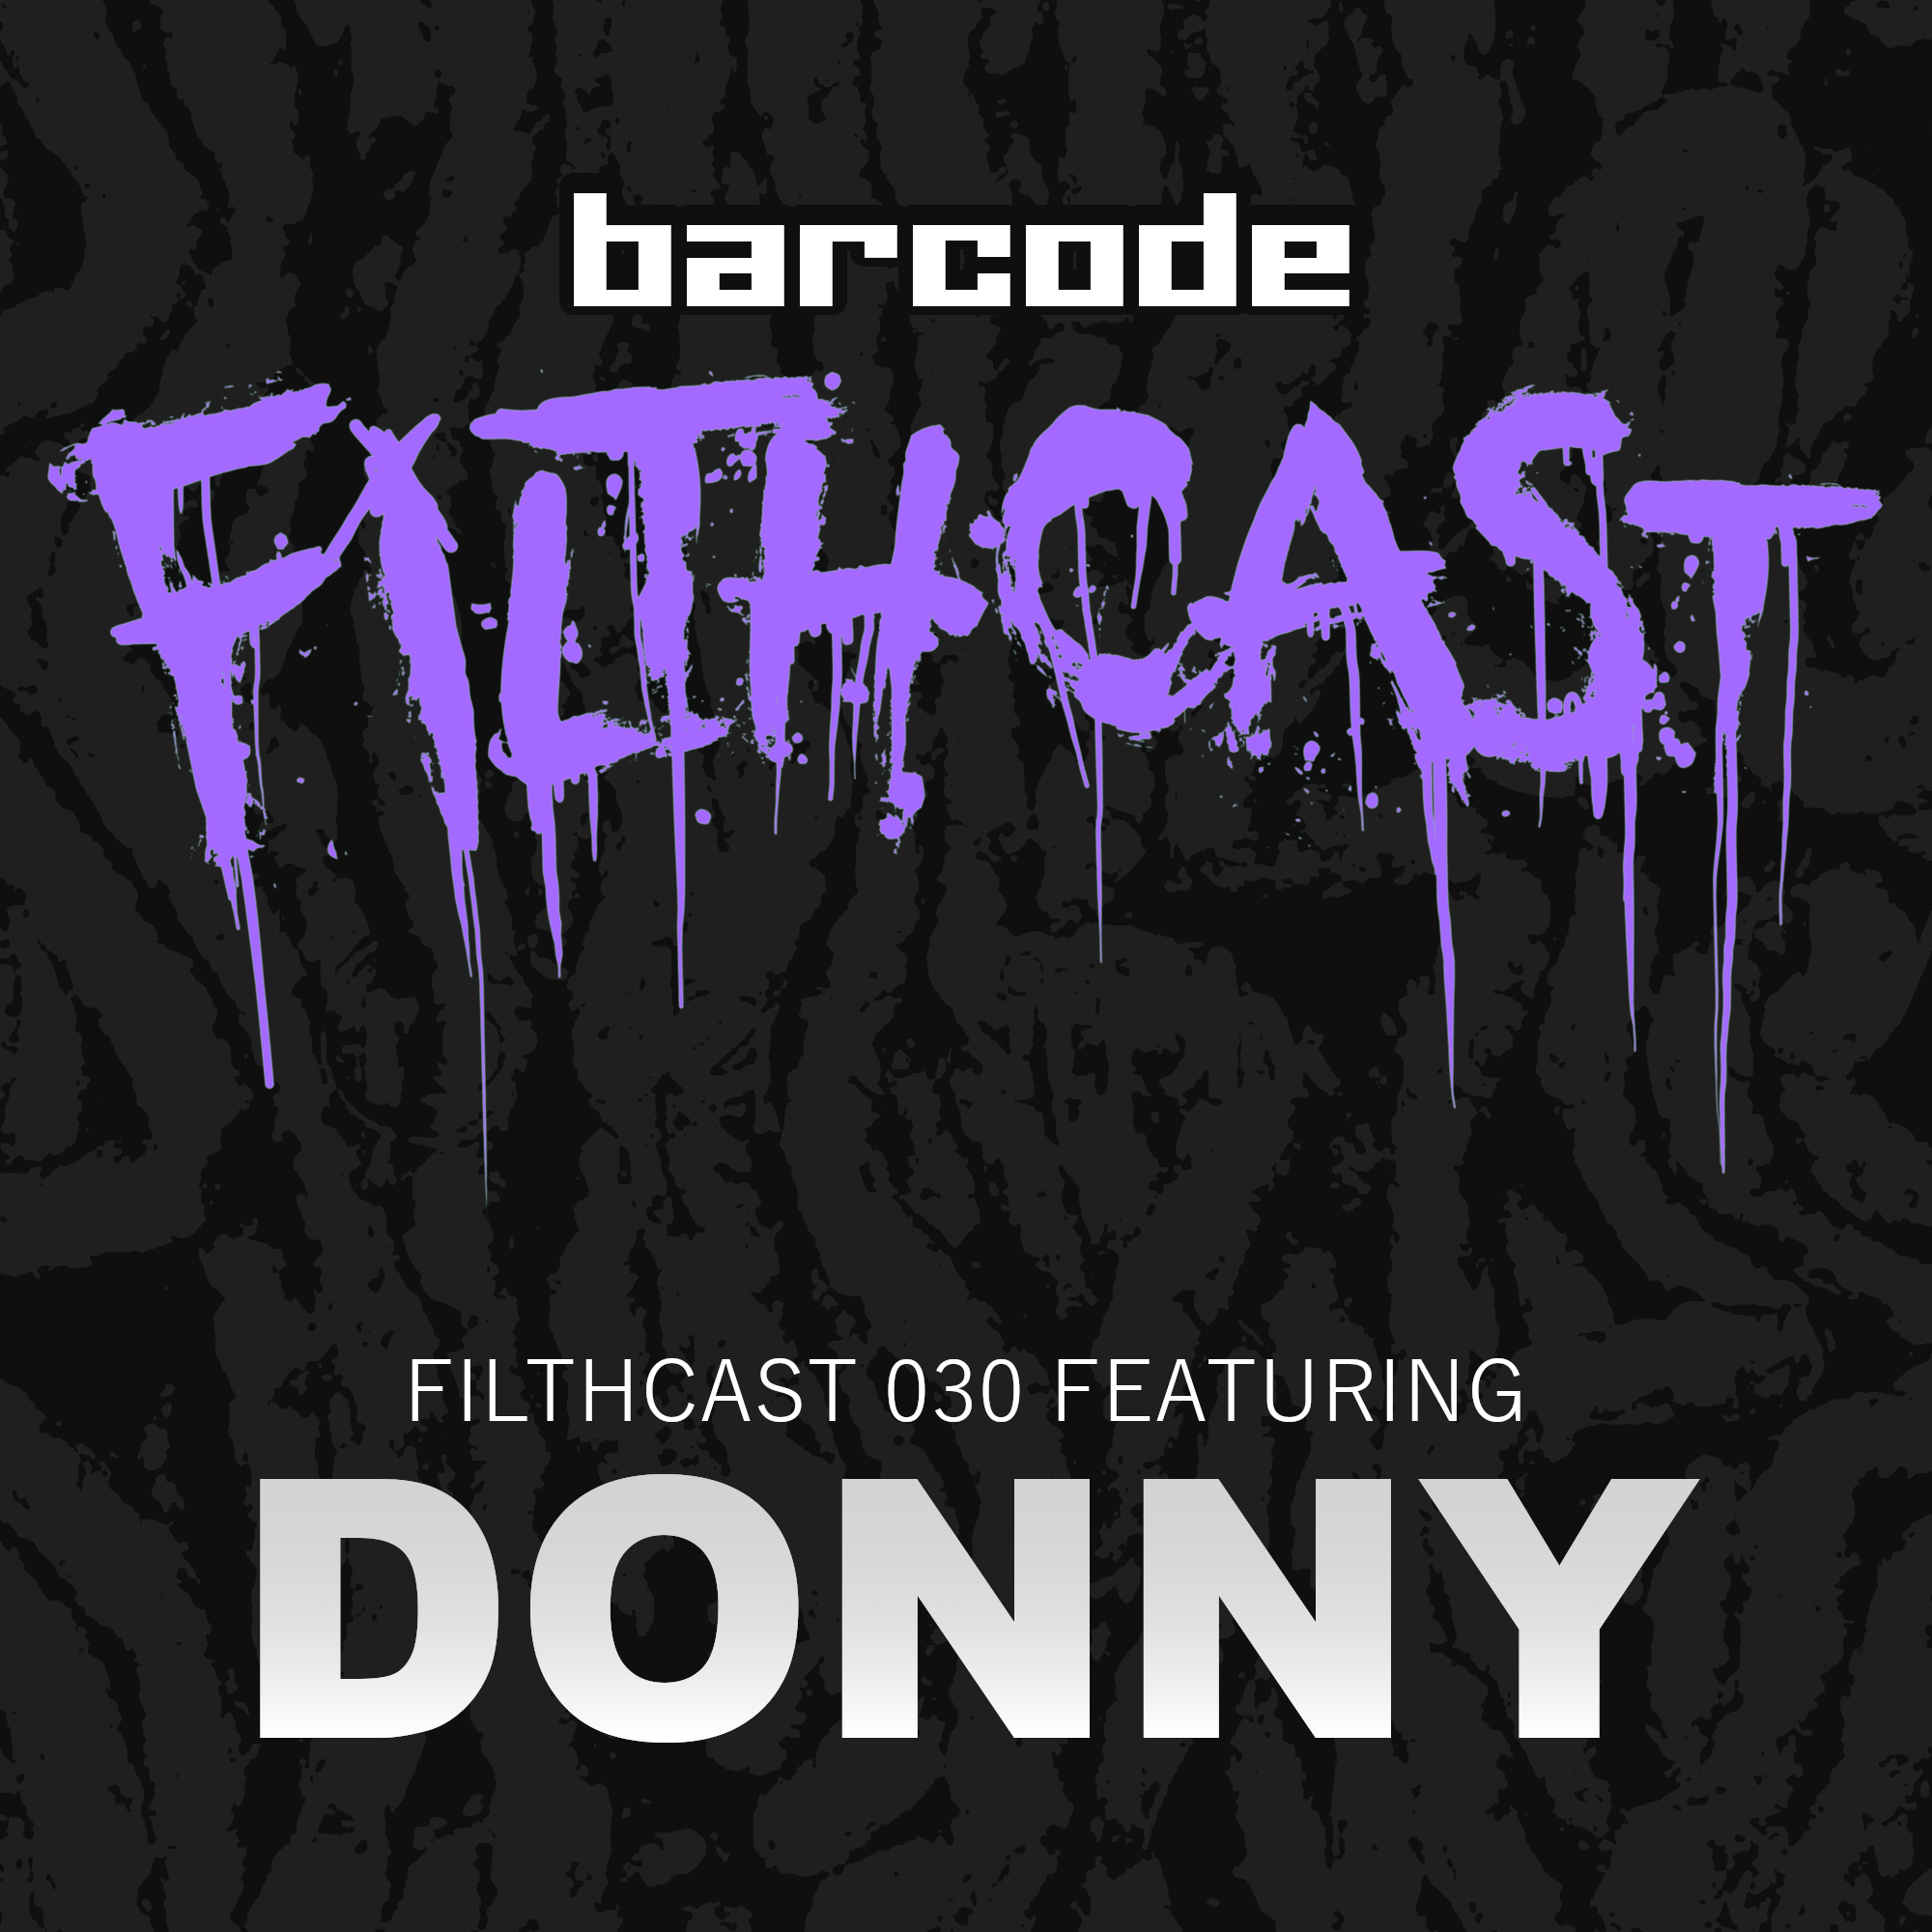 The triumphant return of Donny to the Filthcast!